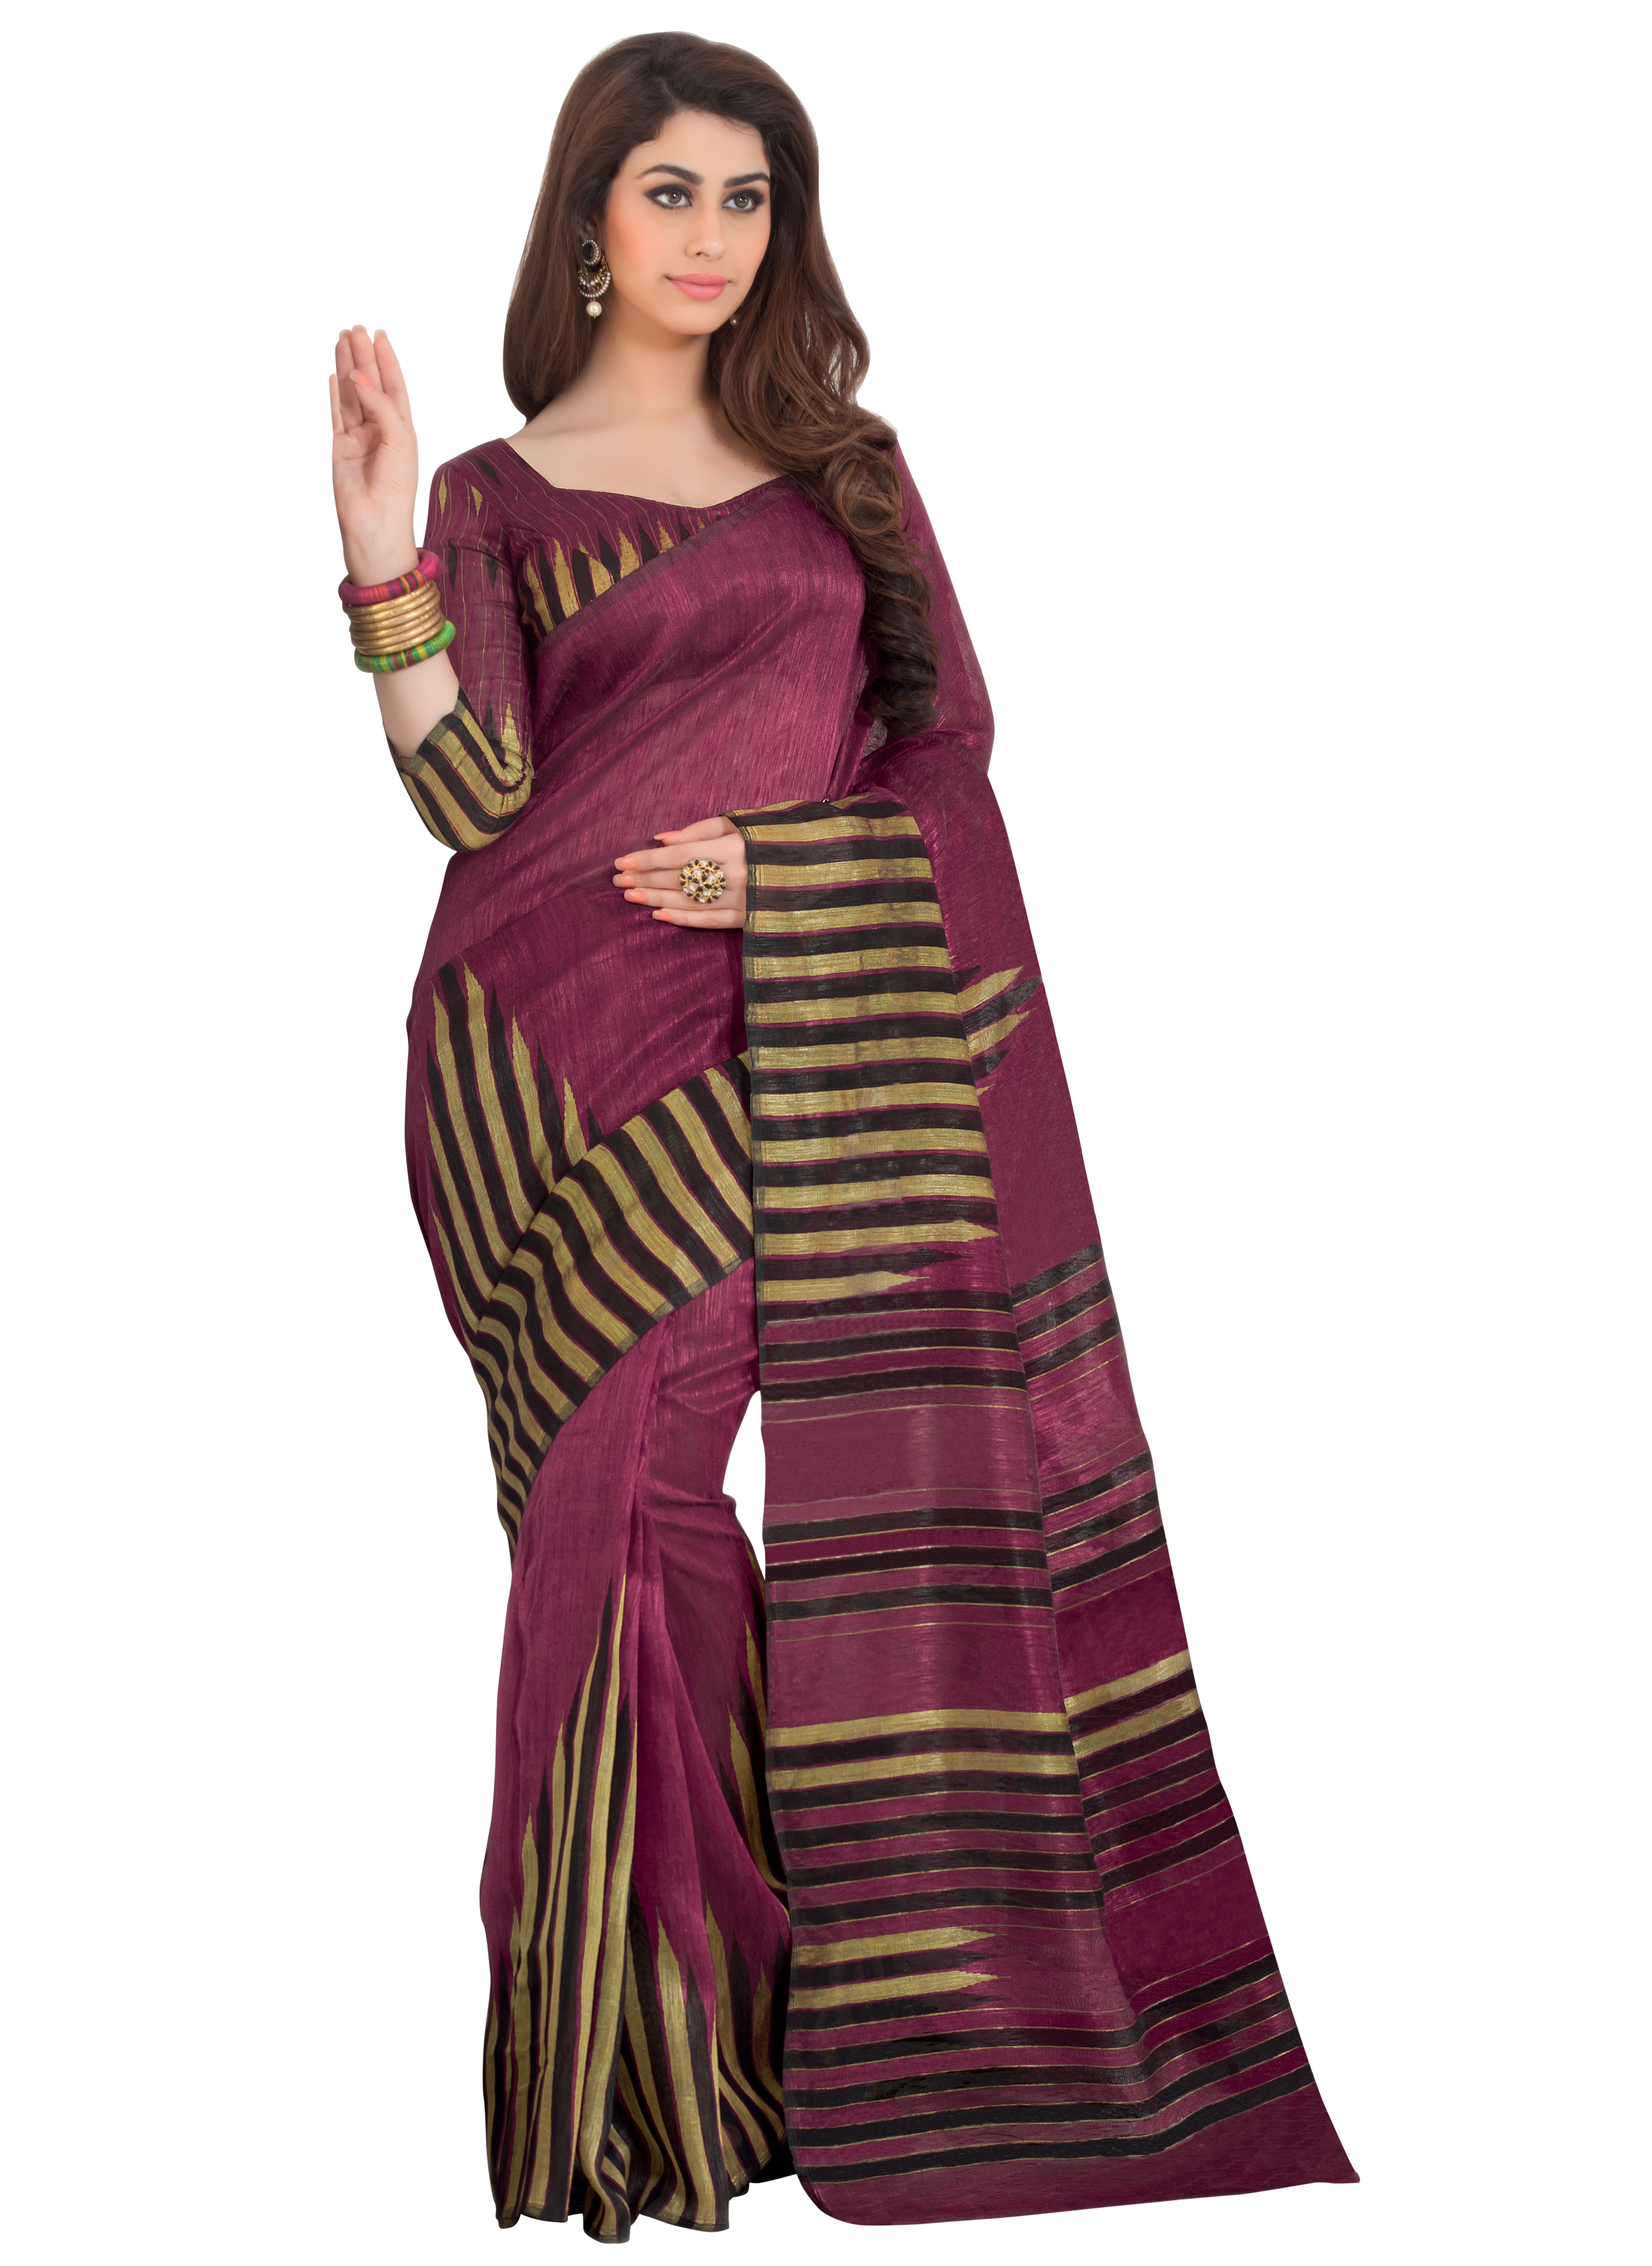 Prafful Maroon Jute Silk Saree With Unstiched Blouse GS99145